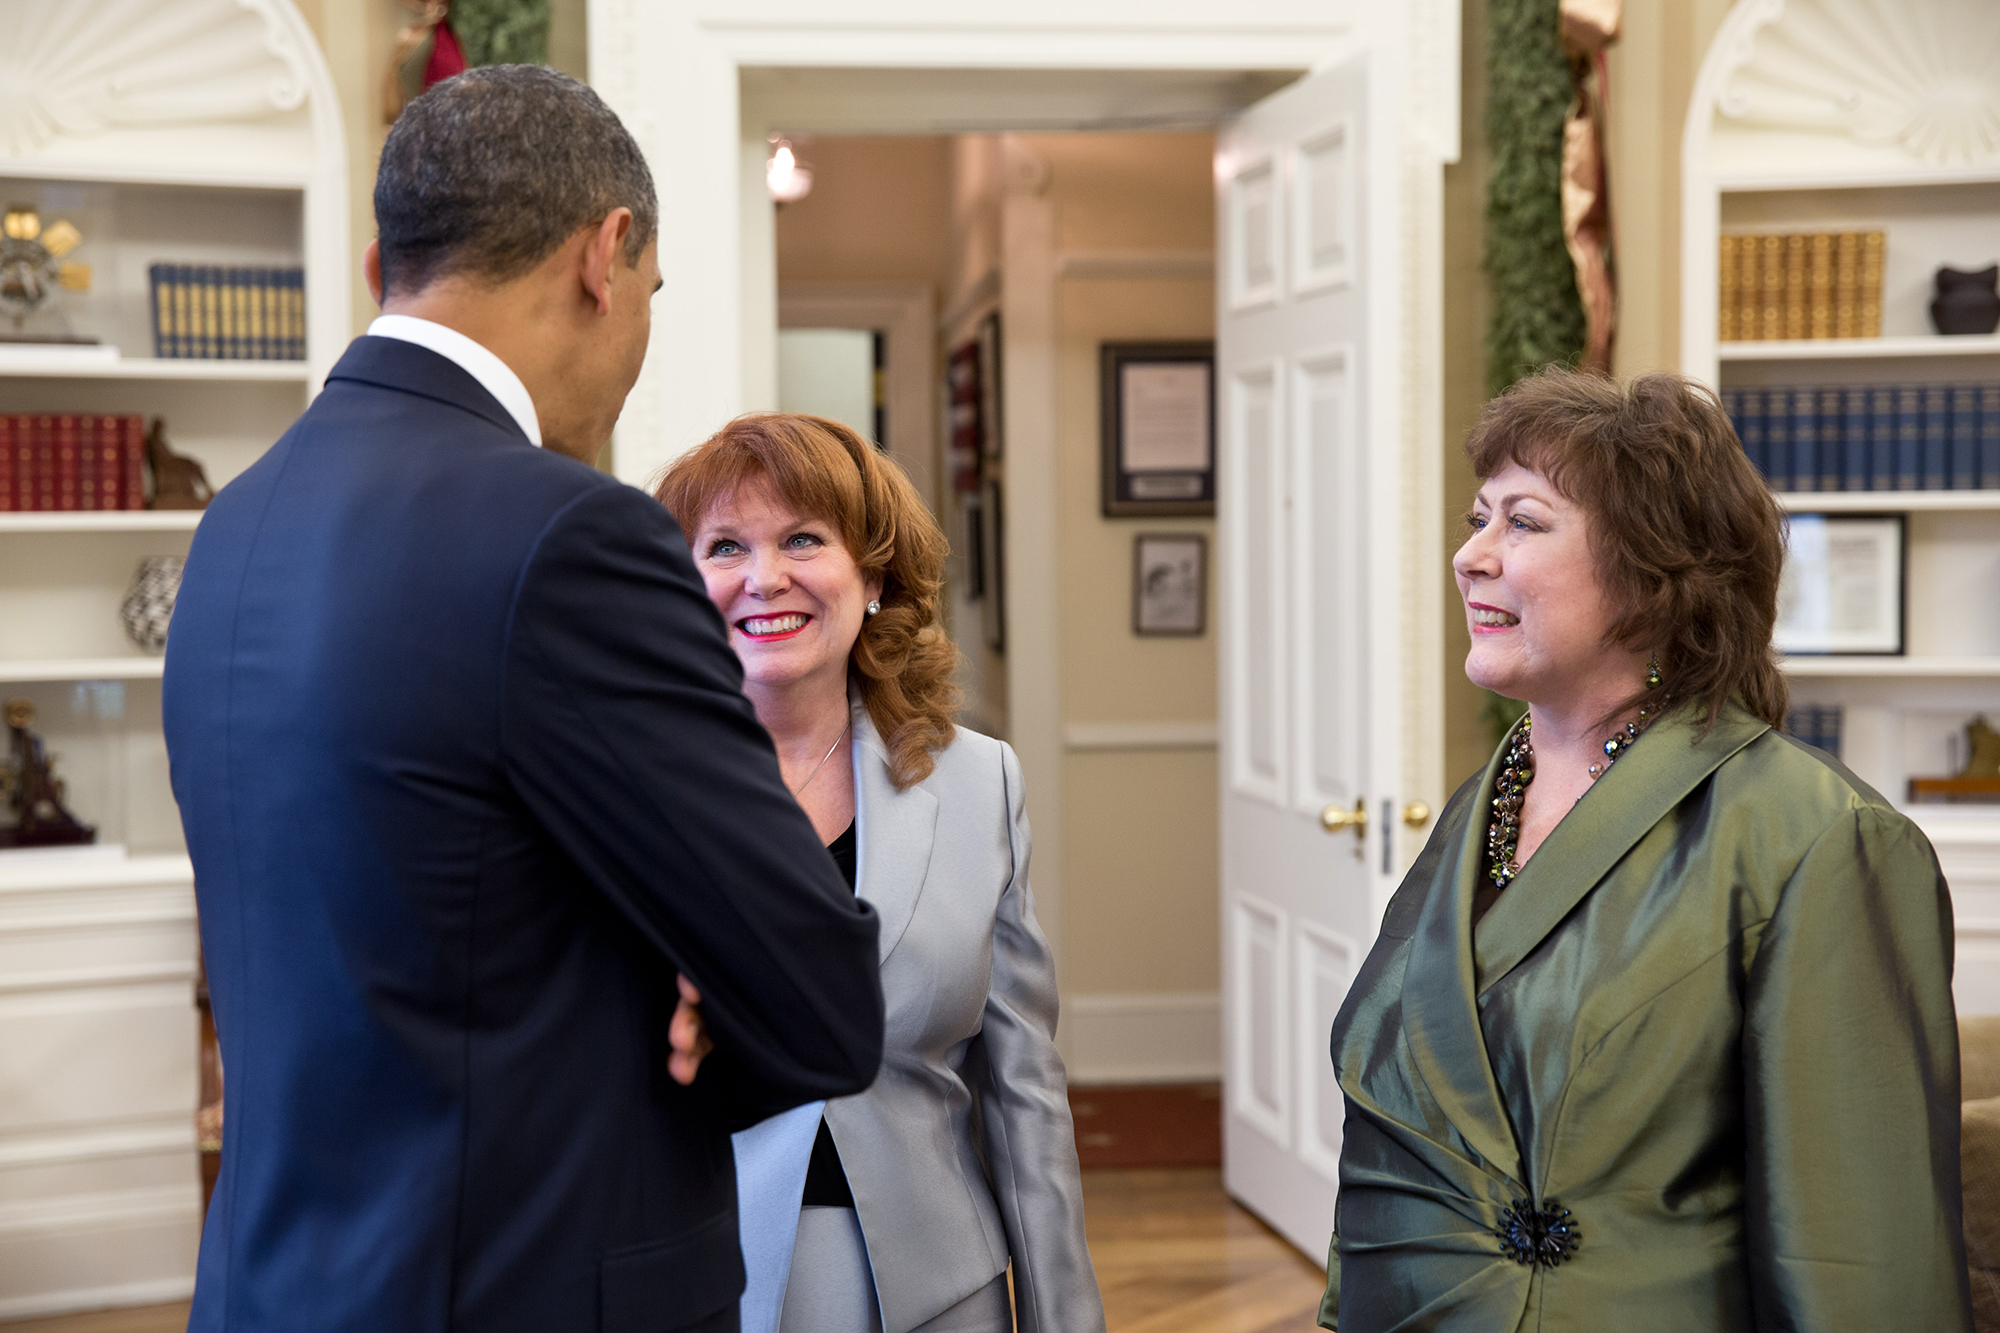 President Barack Obama talks with Natoma Canfield, right, and her sister, Connie Anderson, in the Oval Office, Dec. 12, 2012. The letter Canfield sent the President in 2010 hangs on the wall in the background.